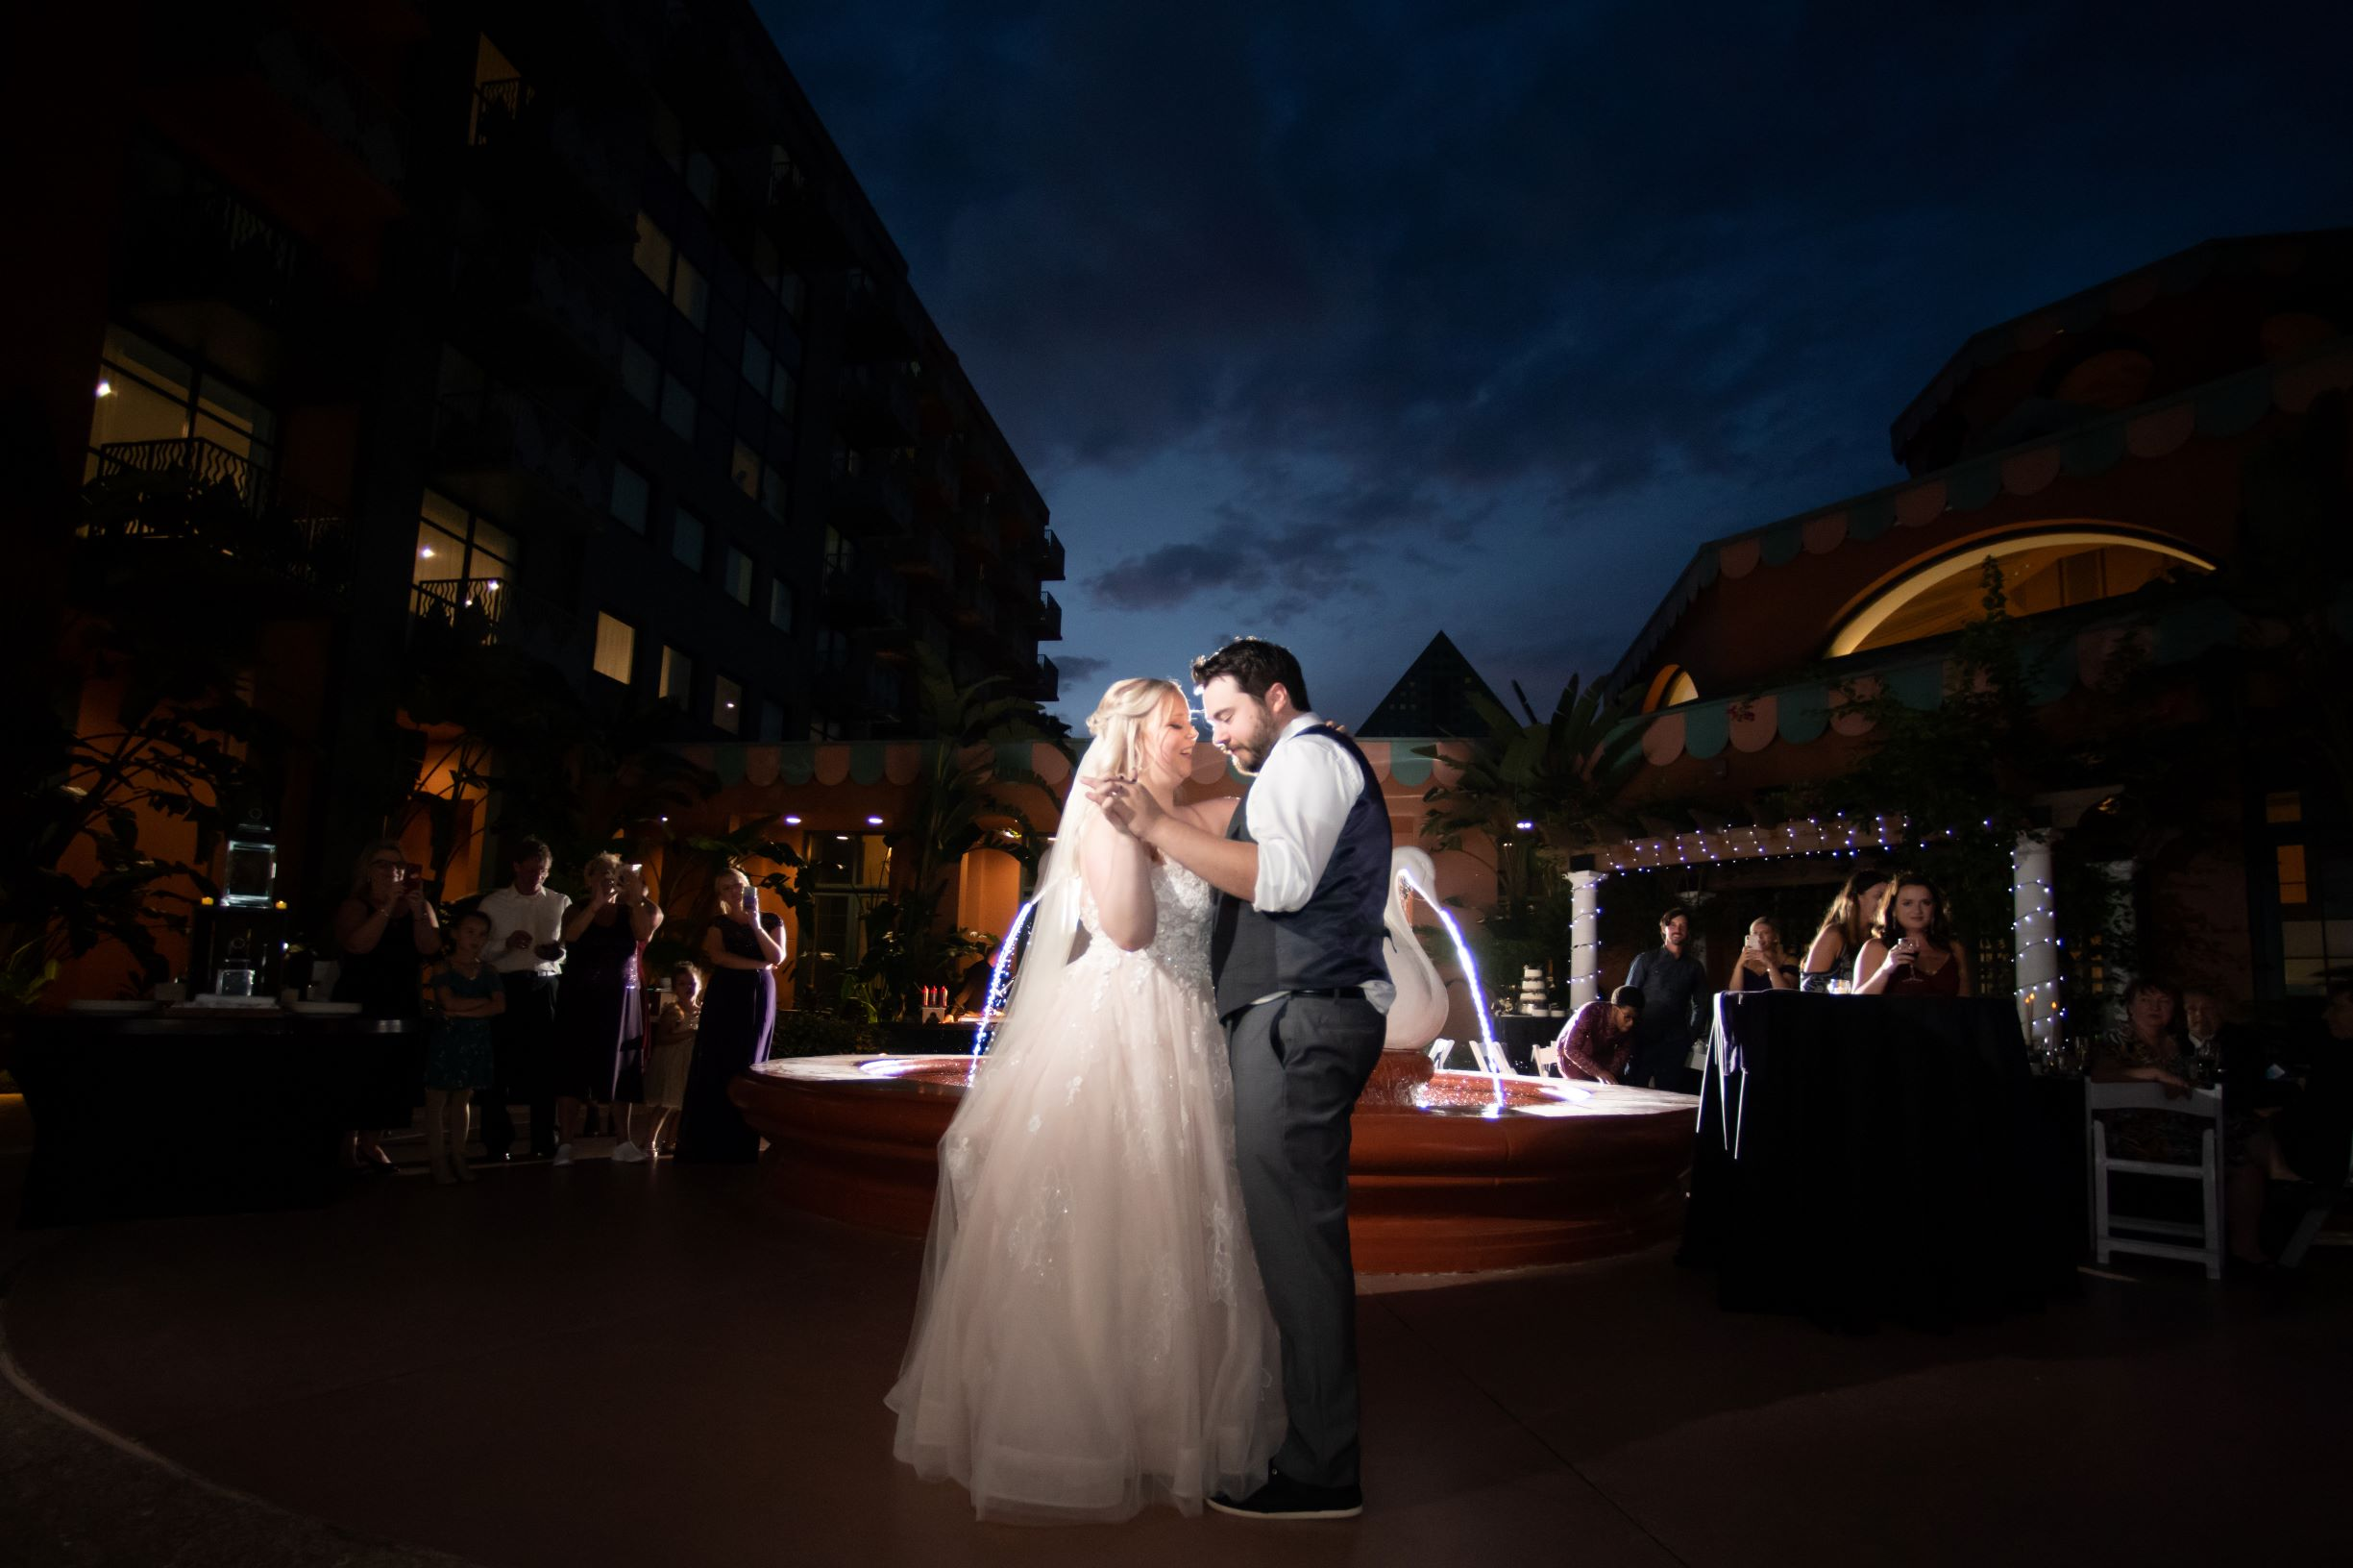 October Wedding Ideas | The Swan Wedding of Tiffany and Ross